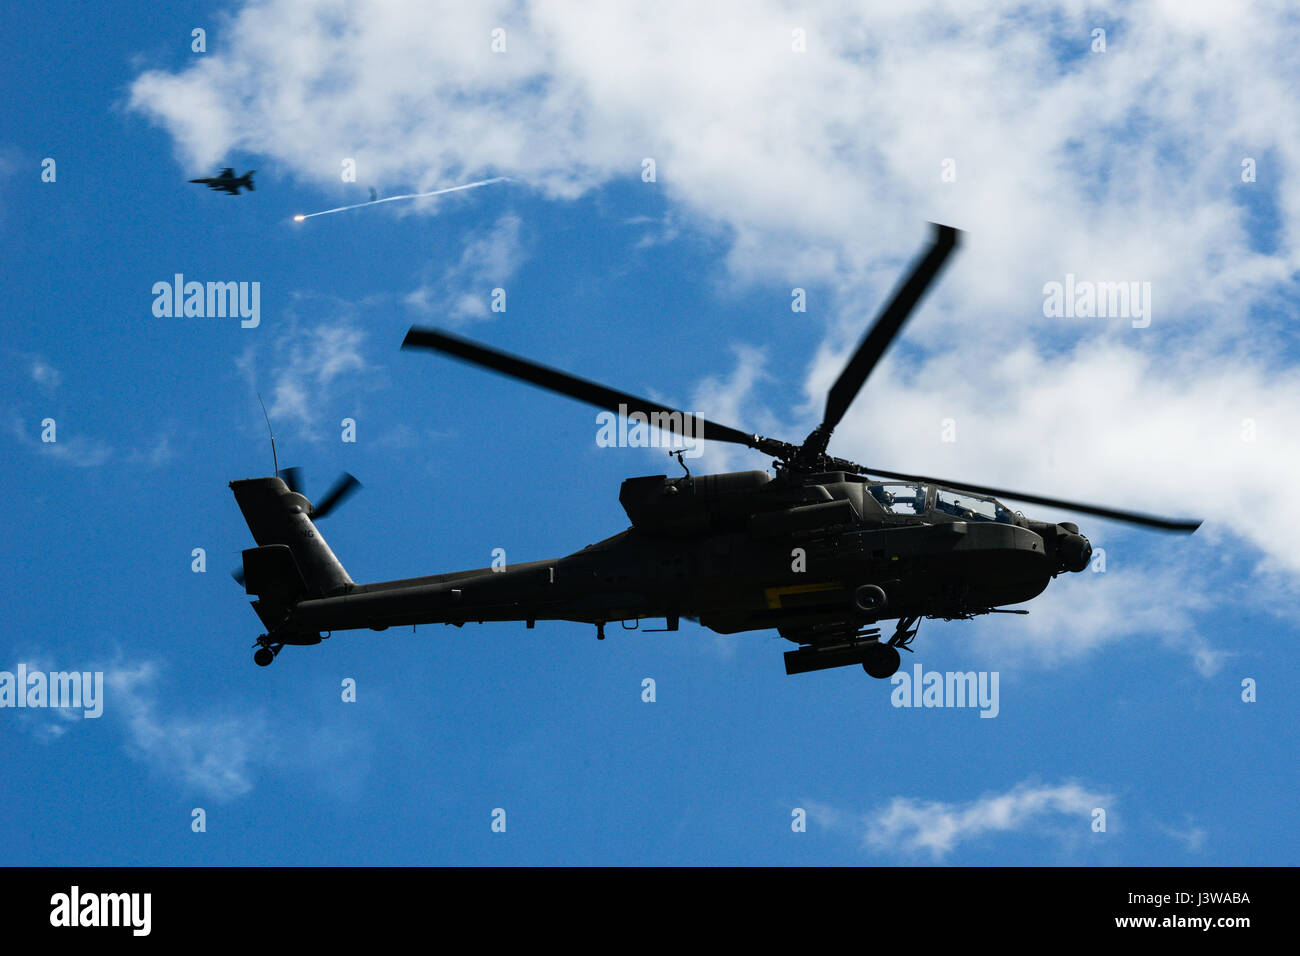 A U.S. Army AH-64D Apache Attack Helicopter, assigned to the 1-151st Attack Reconnaissance Battalion, during the Stock Photo